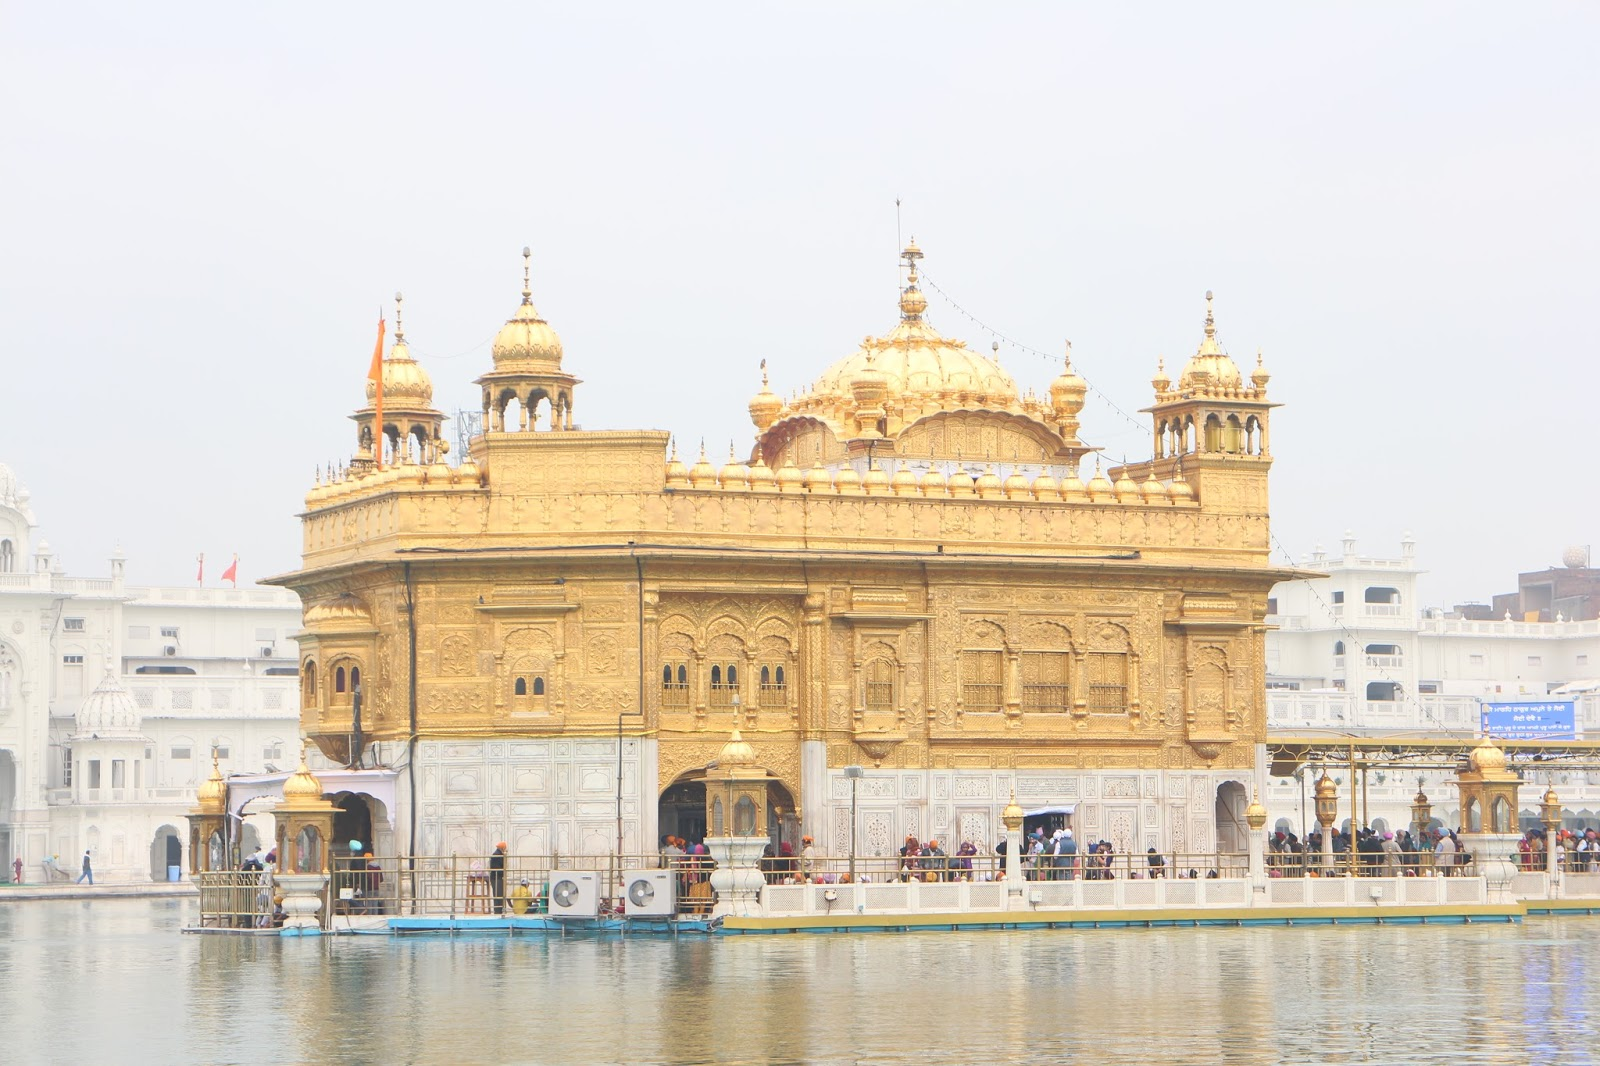 Short essay on visit to golden temple